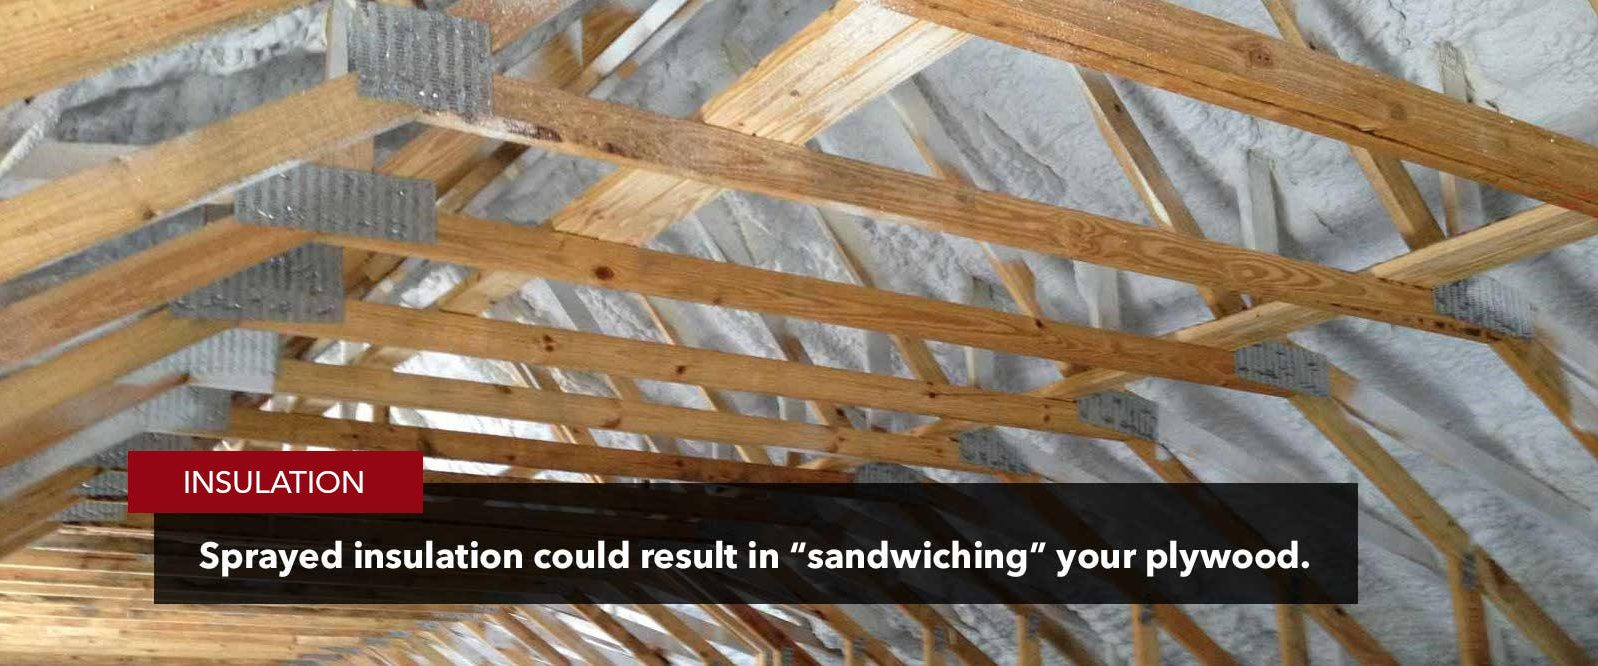 sprayed insulation roof damage